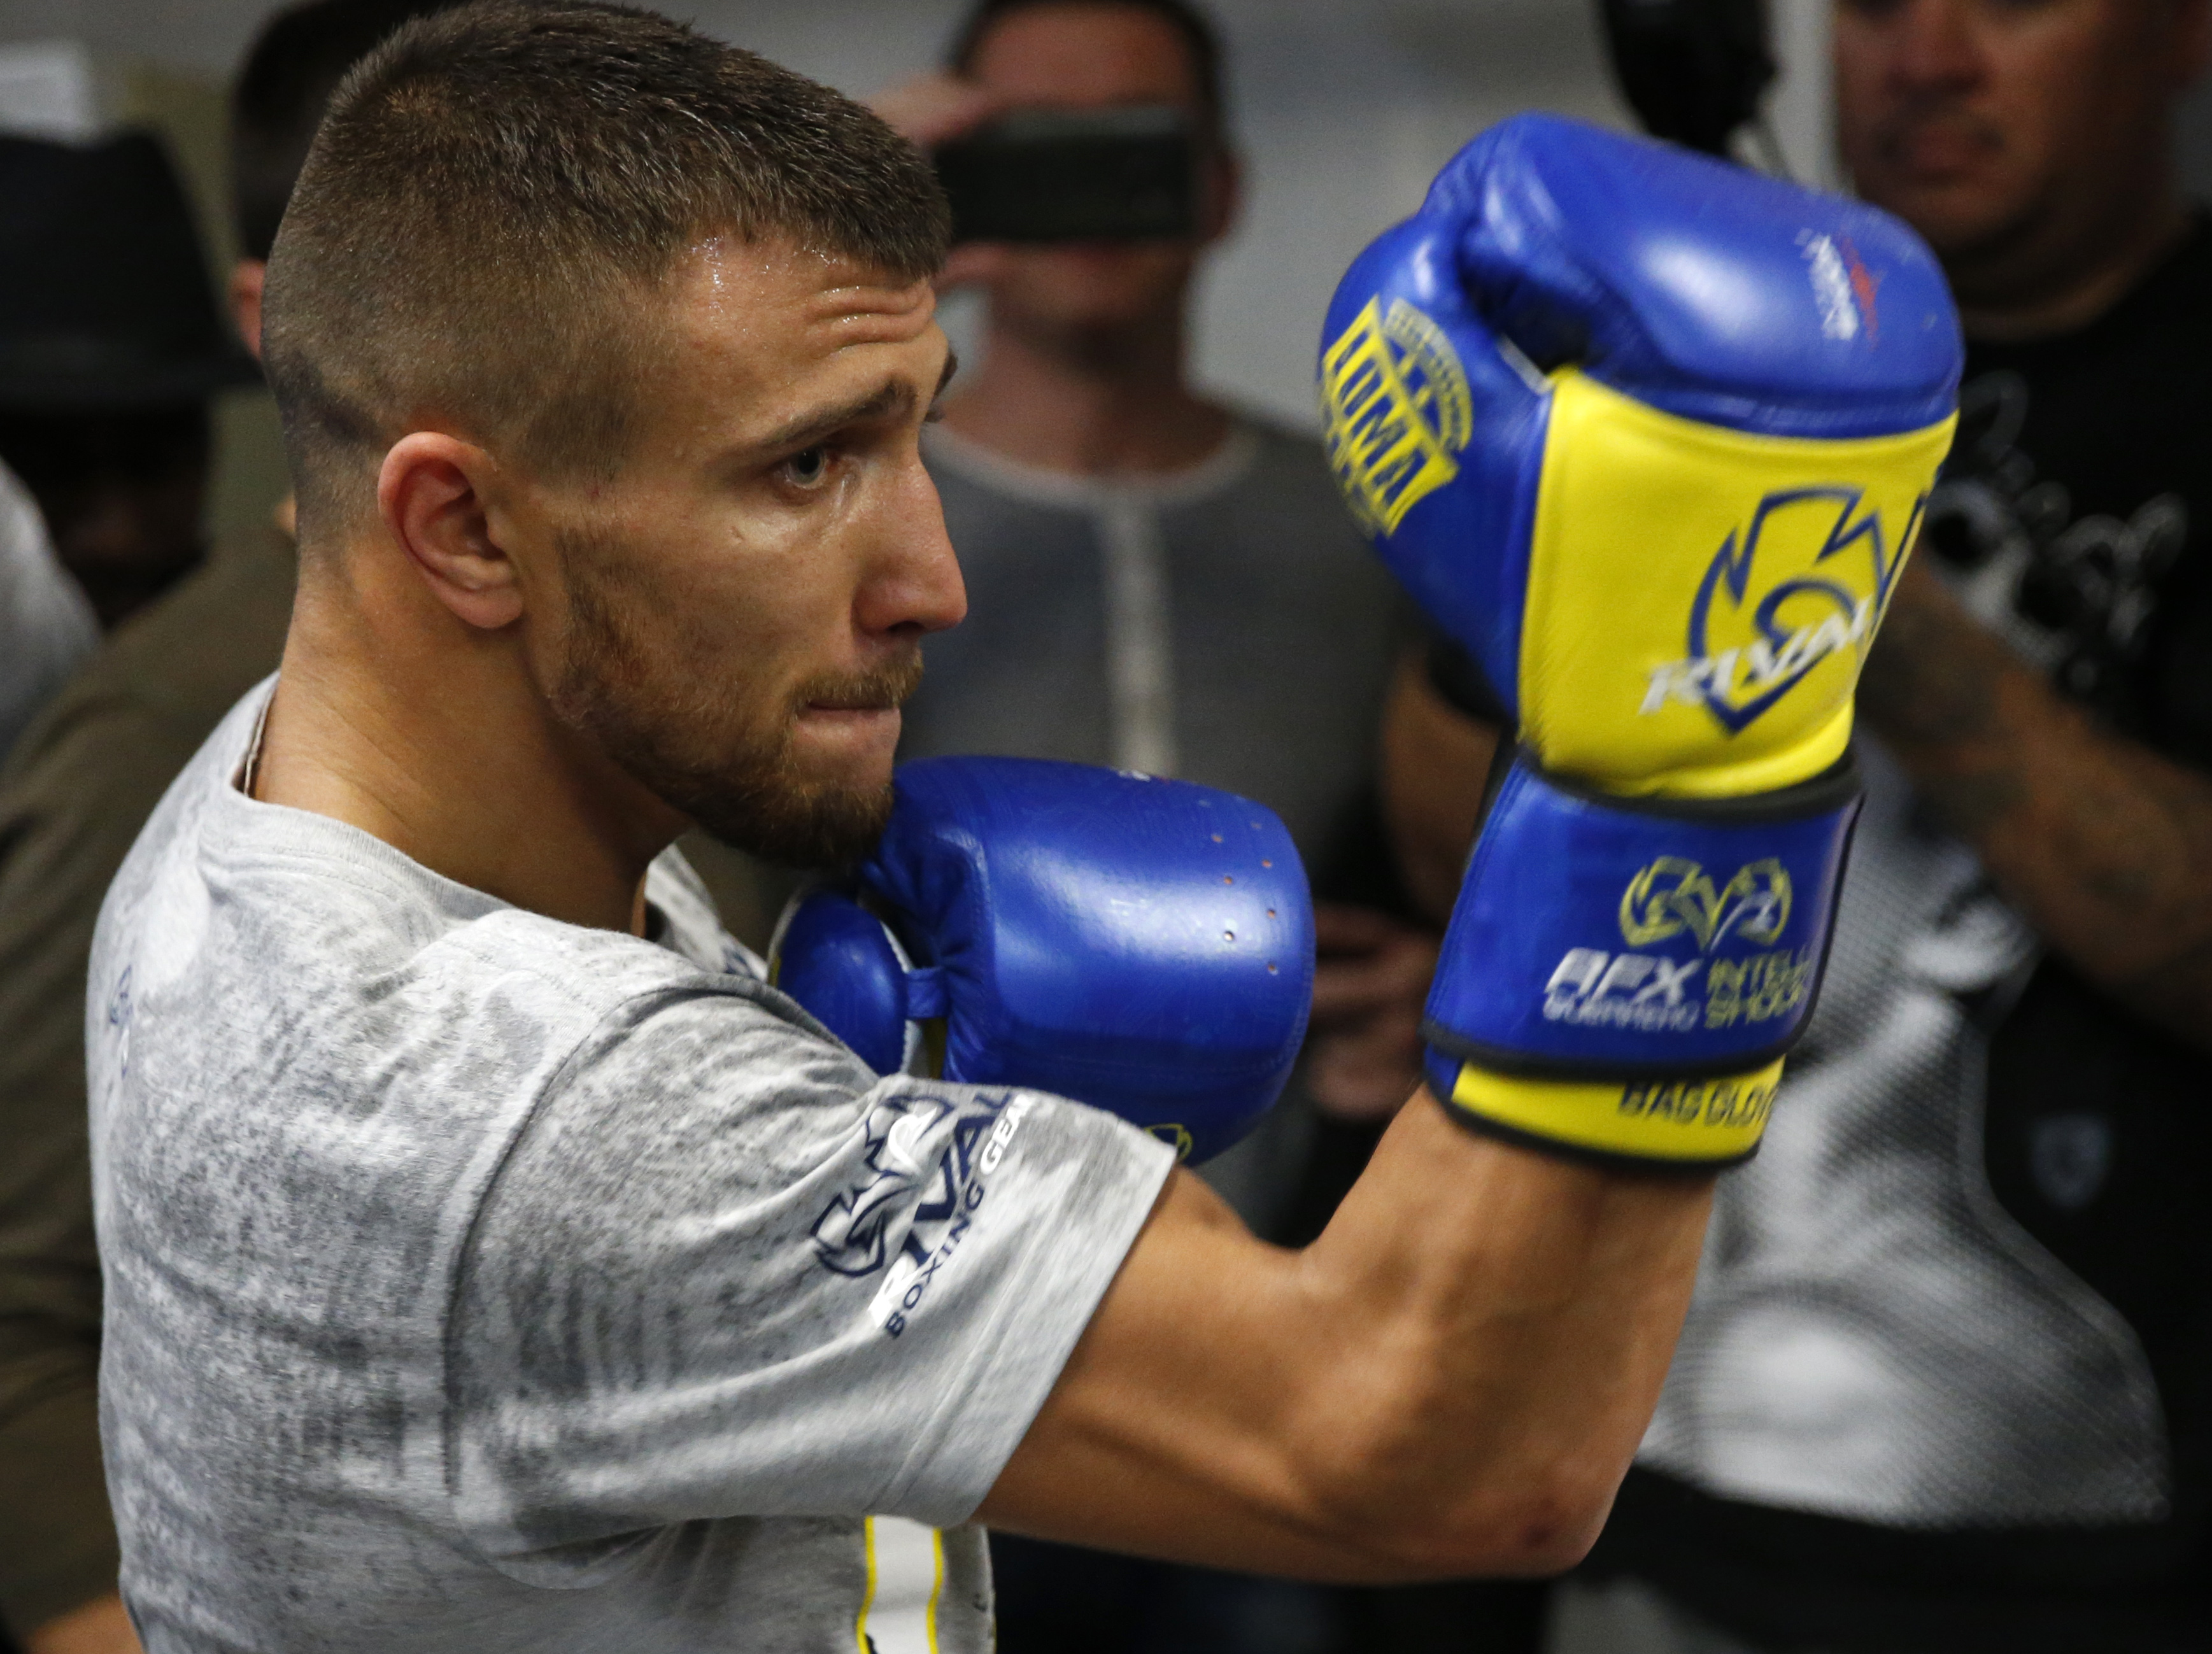 Vasyl Lomachenko, of Ukraine, punches a bag Wednesday, Dec. 6, 2017, during a workout at a Manhattan boxing gym in New York, for Saturday's WBO super featherweight title fight against Cuban defector Guillermo Rigondeaux, 37. The fight, said to pit two of boxing's pound-for-pound best technical fighters, will be held at Madison Square Garden. (AP Photo/Kathy Willens)